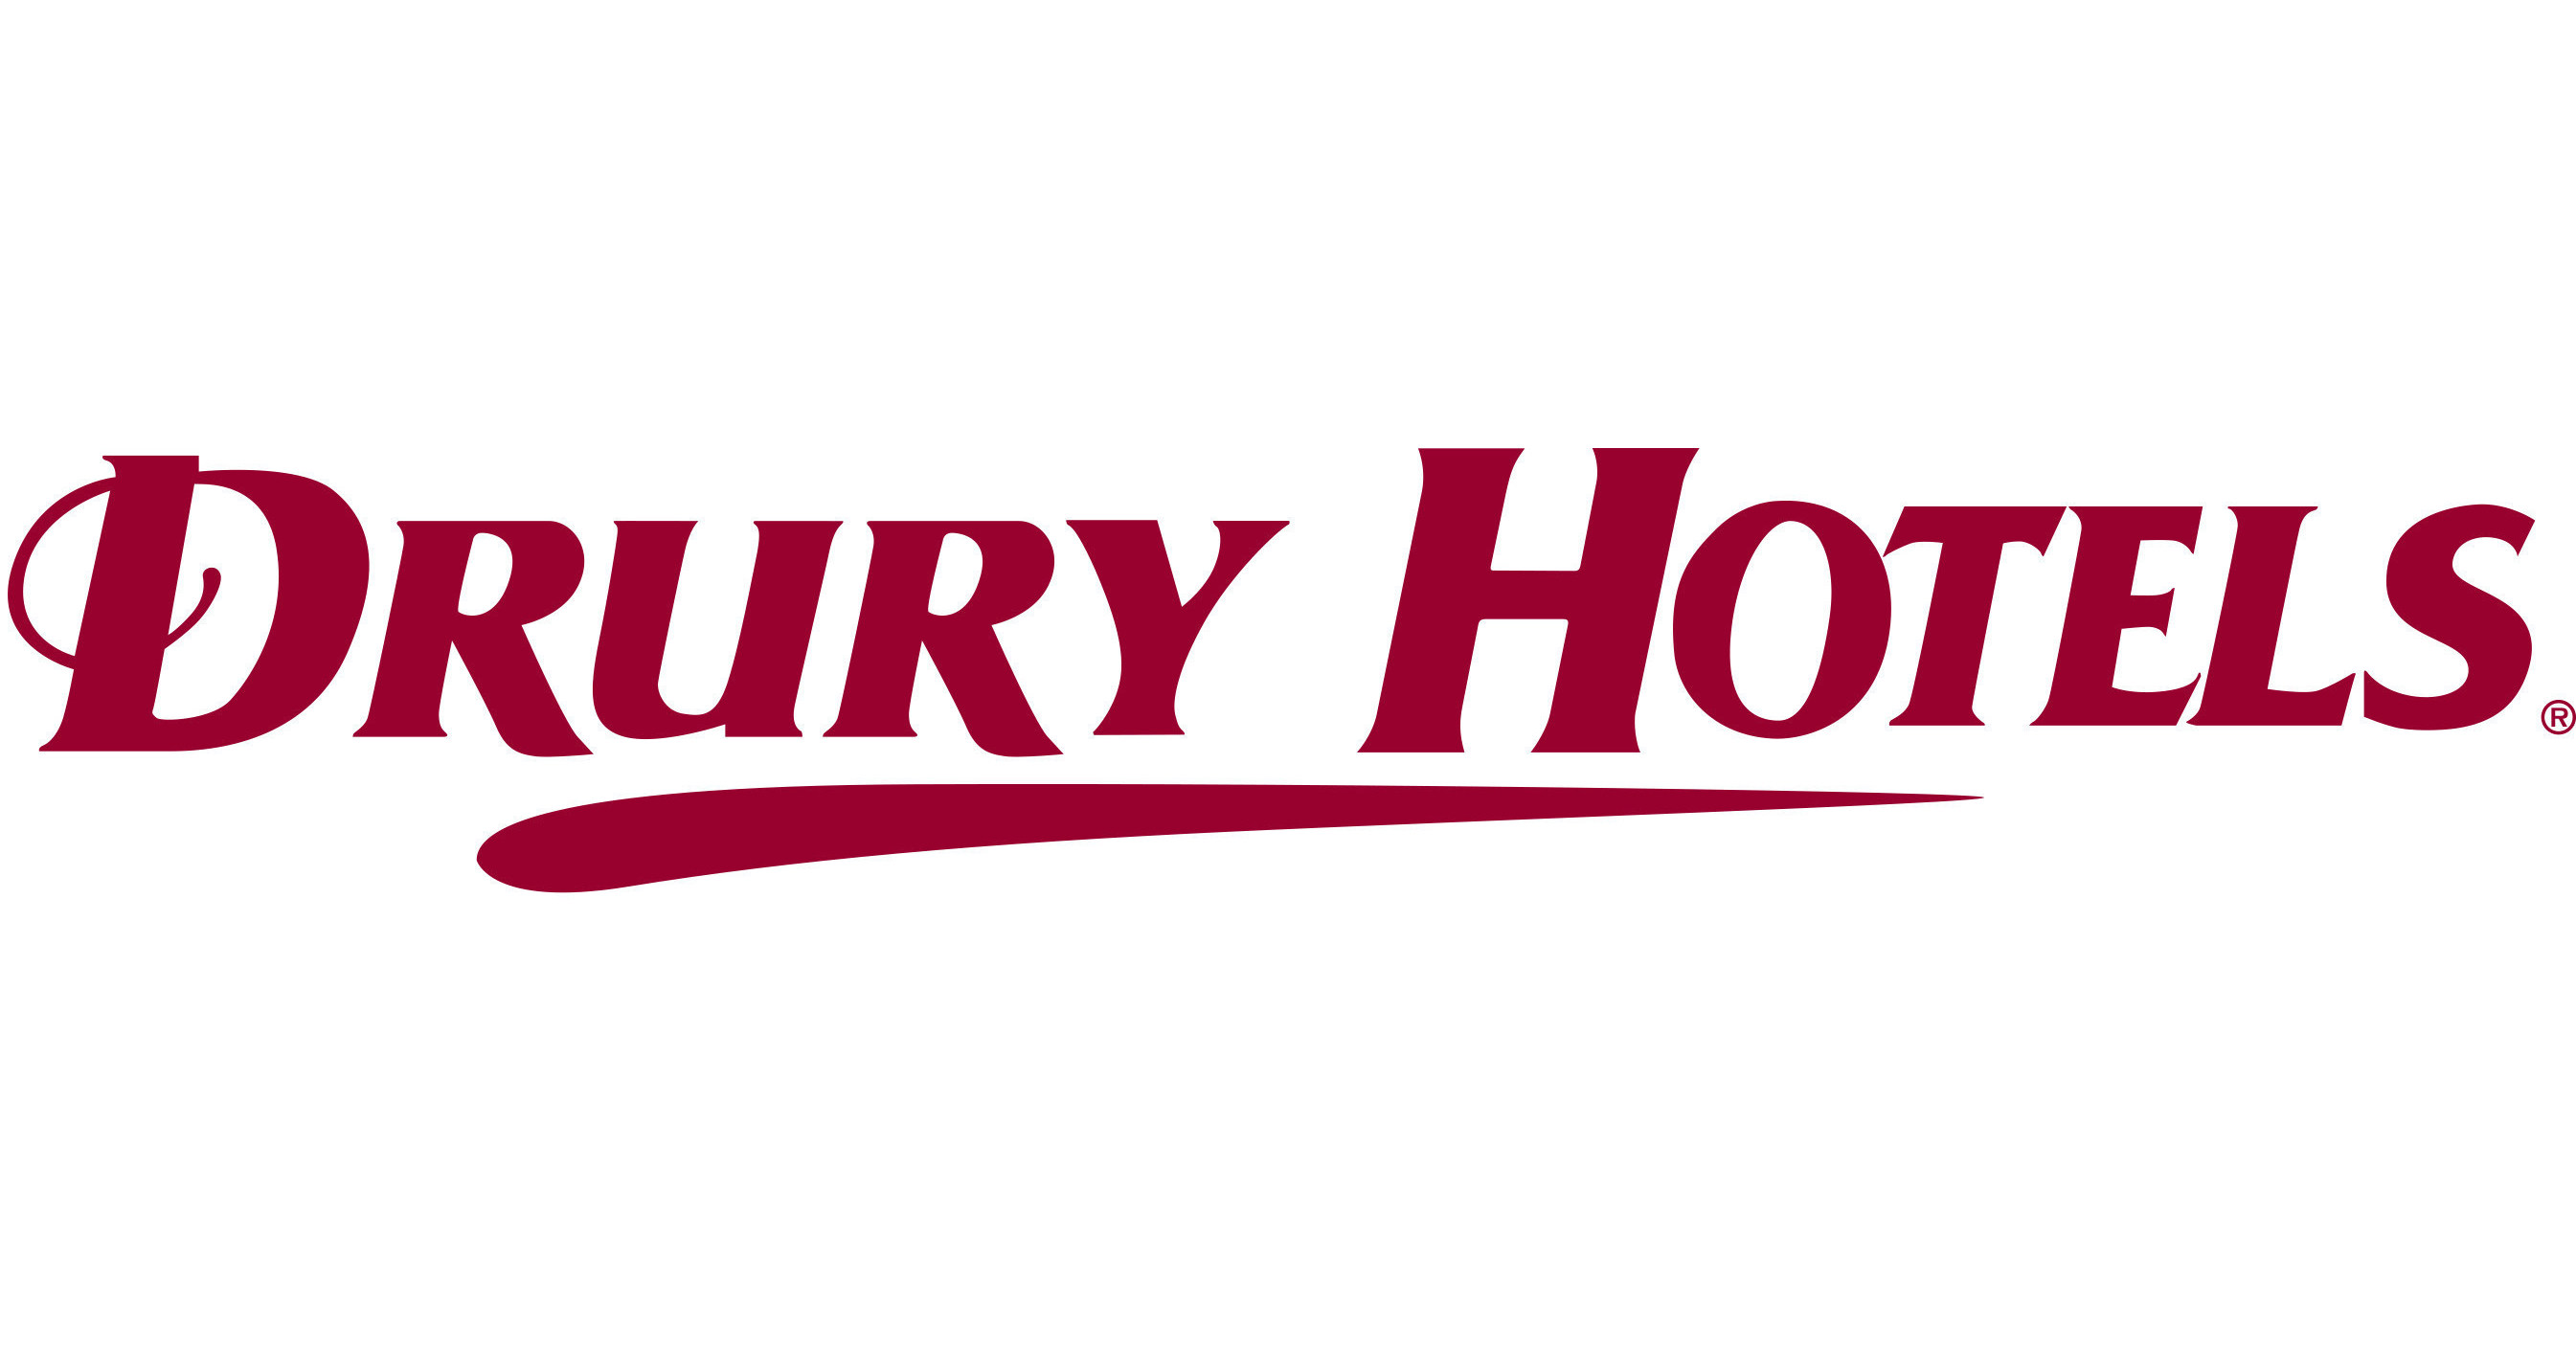 Dh Auto Sales >> Drury Hotels receives record-breaking 12th-consecutive J.D. Power award